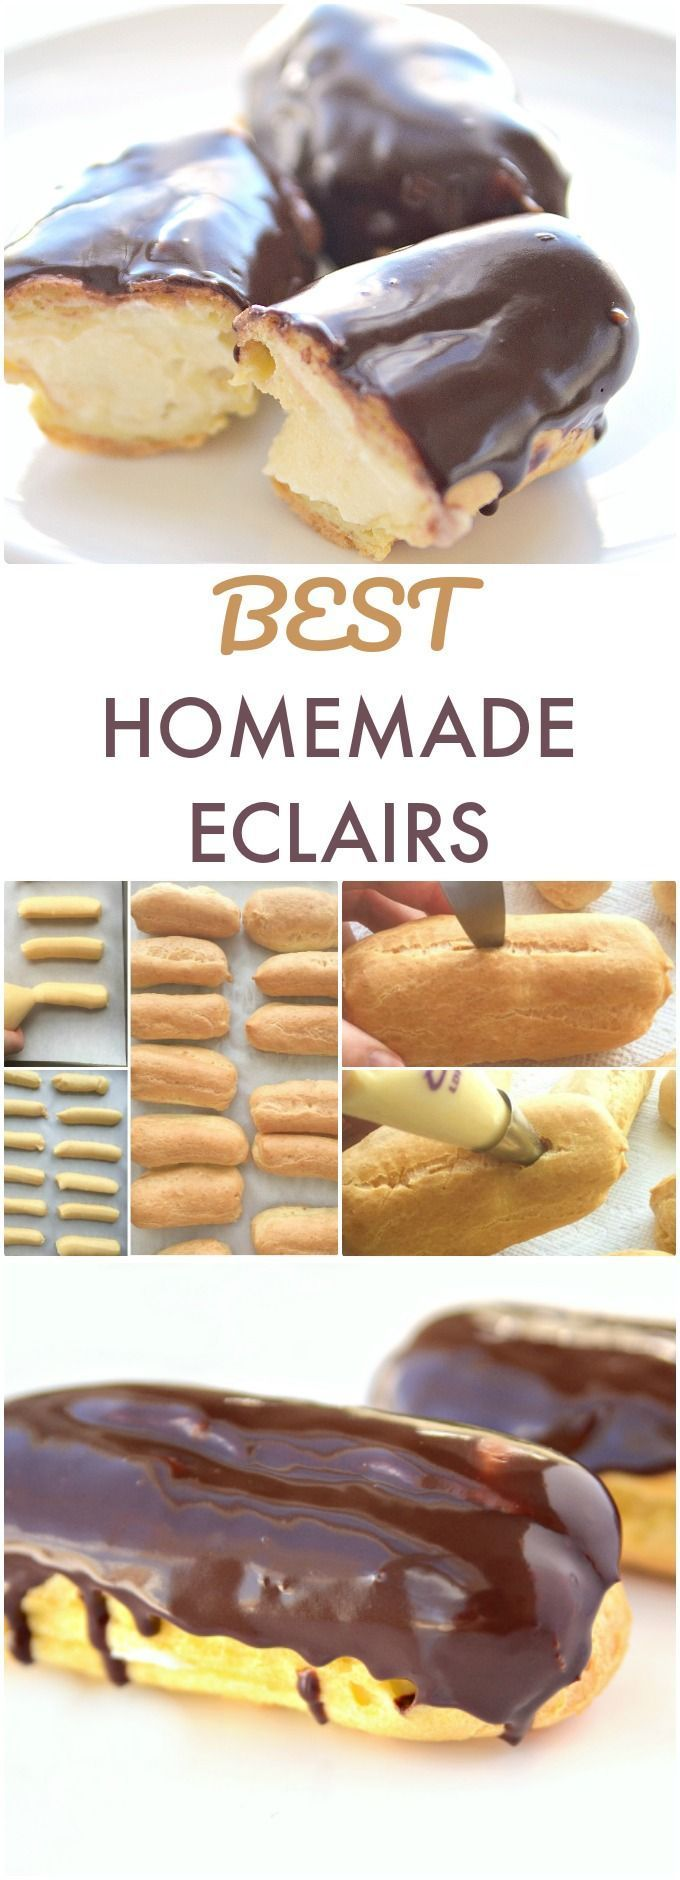 Dough for eclairs at home: a step-by-step culinary recipe